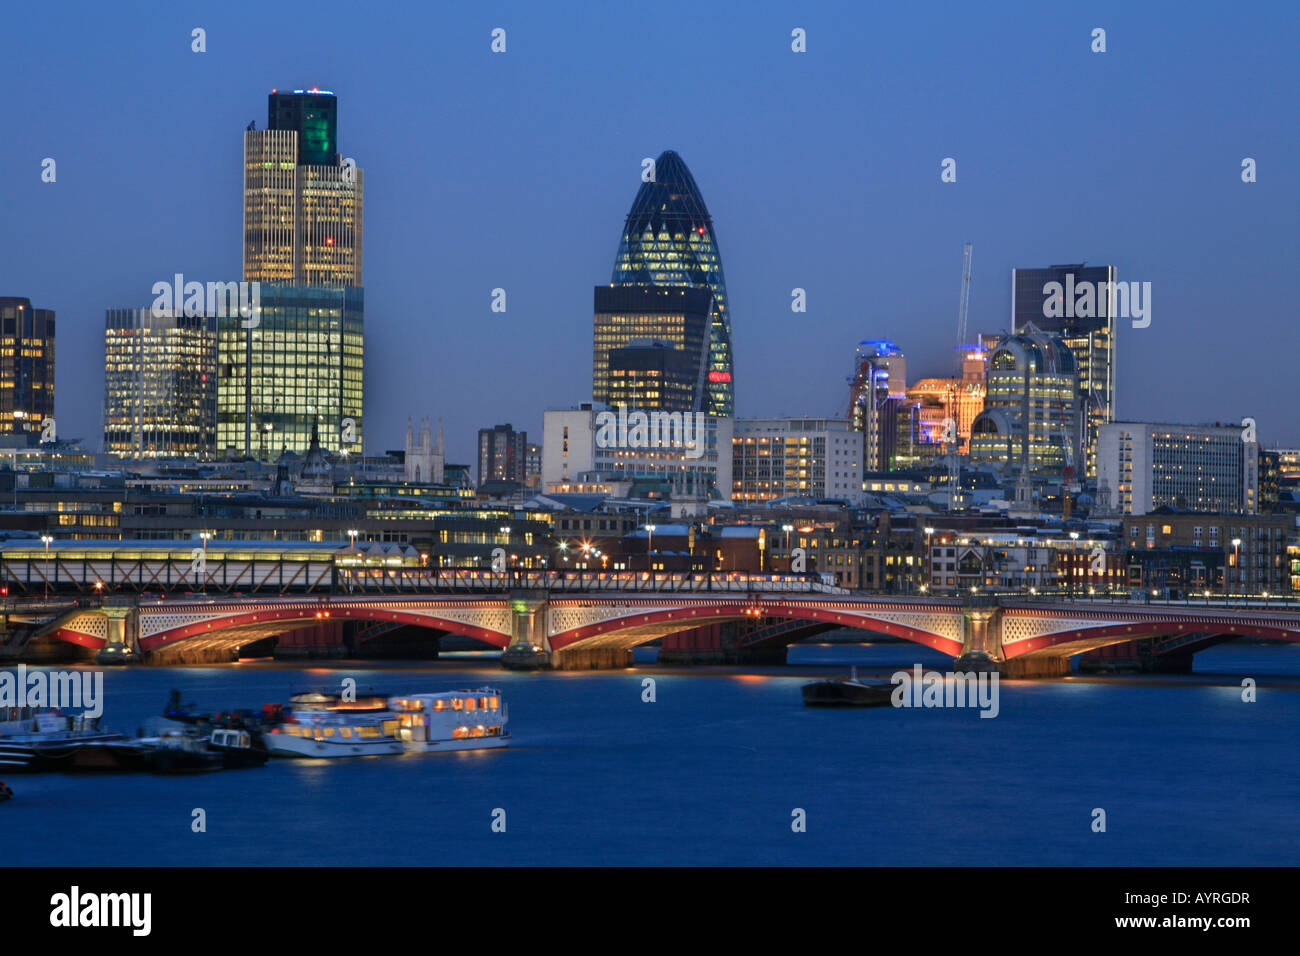 City of London skyline, Swiss Re Tower (30 St. Mary Axe) and other skyscrapers, London, England, UK - Stock Image